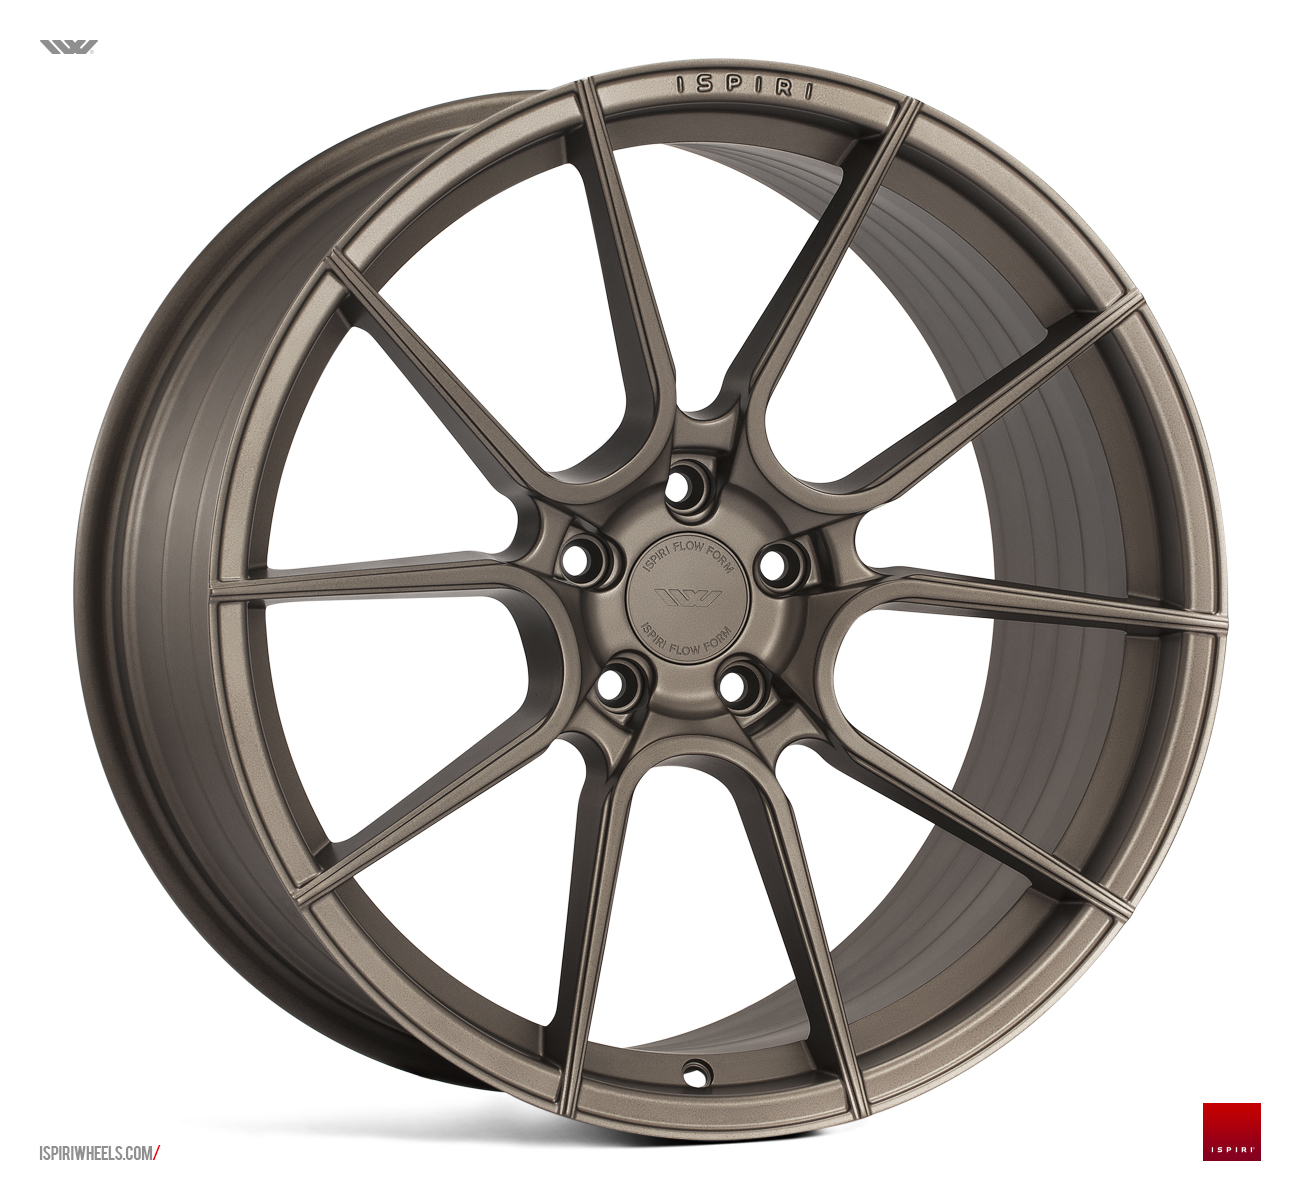 "NEW 20"" ISPIRI FFR6 TWIN 5 SPOKE ALLOY WHEELS IN MATT CARBON BRONZE, WIDER 10"" REAR"